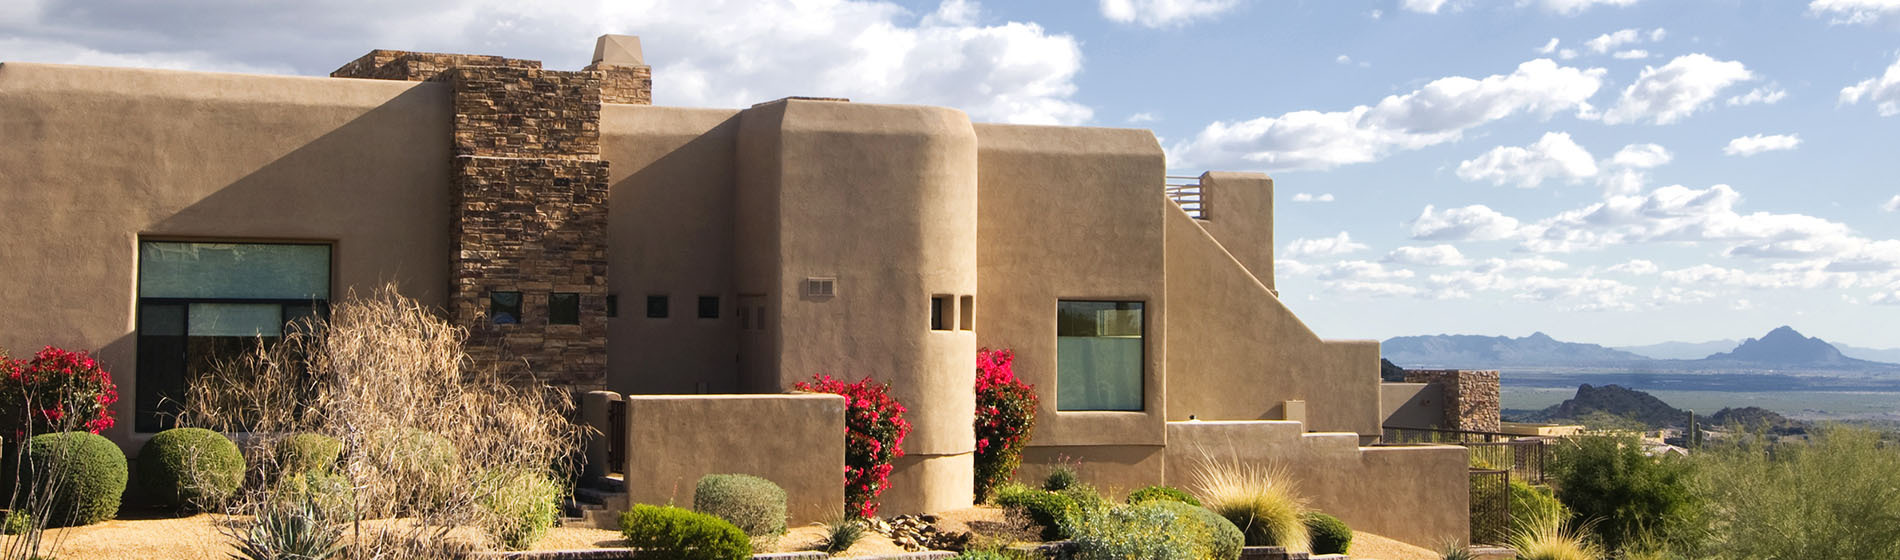 Things to Love About Arizona Home